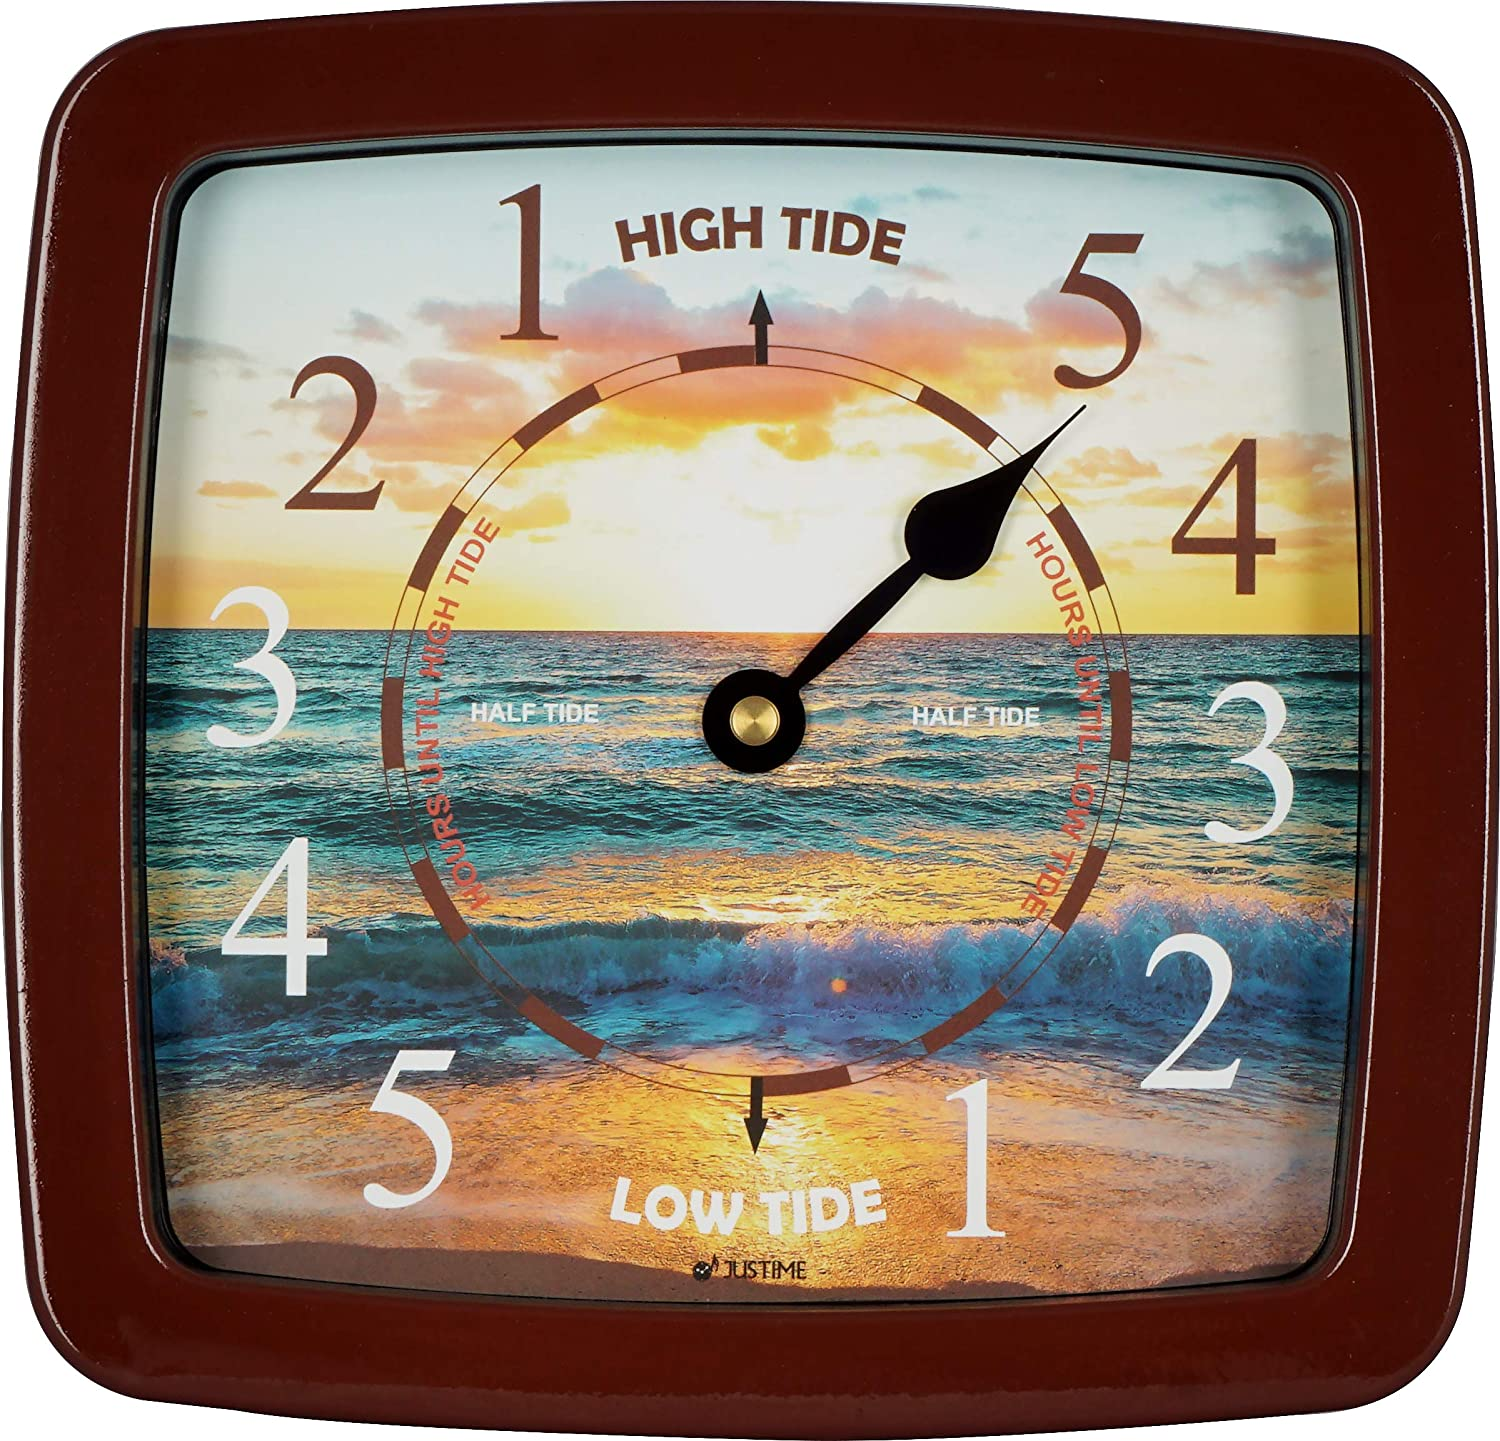 8.5 Inch Tide Clock Colorful Digital Graphics Designed, Quality Plastic Water Resistant Case, Home Wall Décor (TT421BR Sunset Brown)